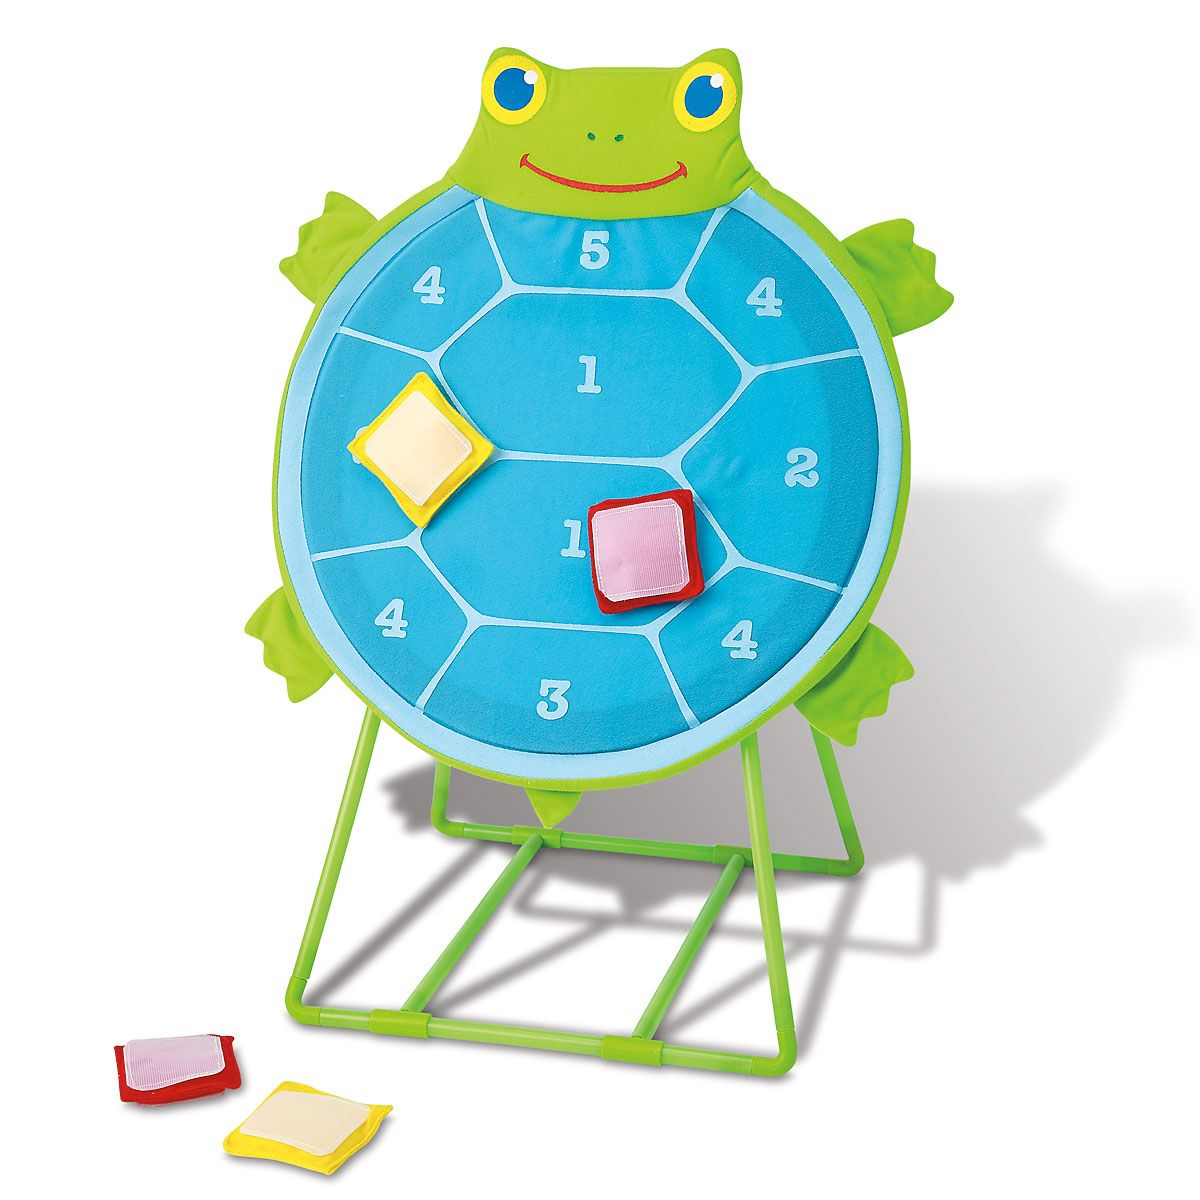 Target Game Dilly Dally by Melissa & Doug®